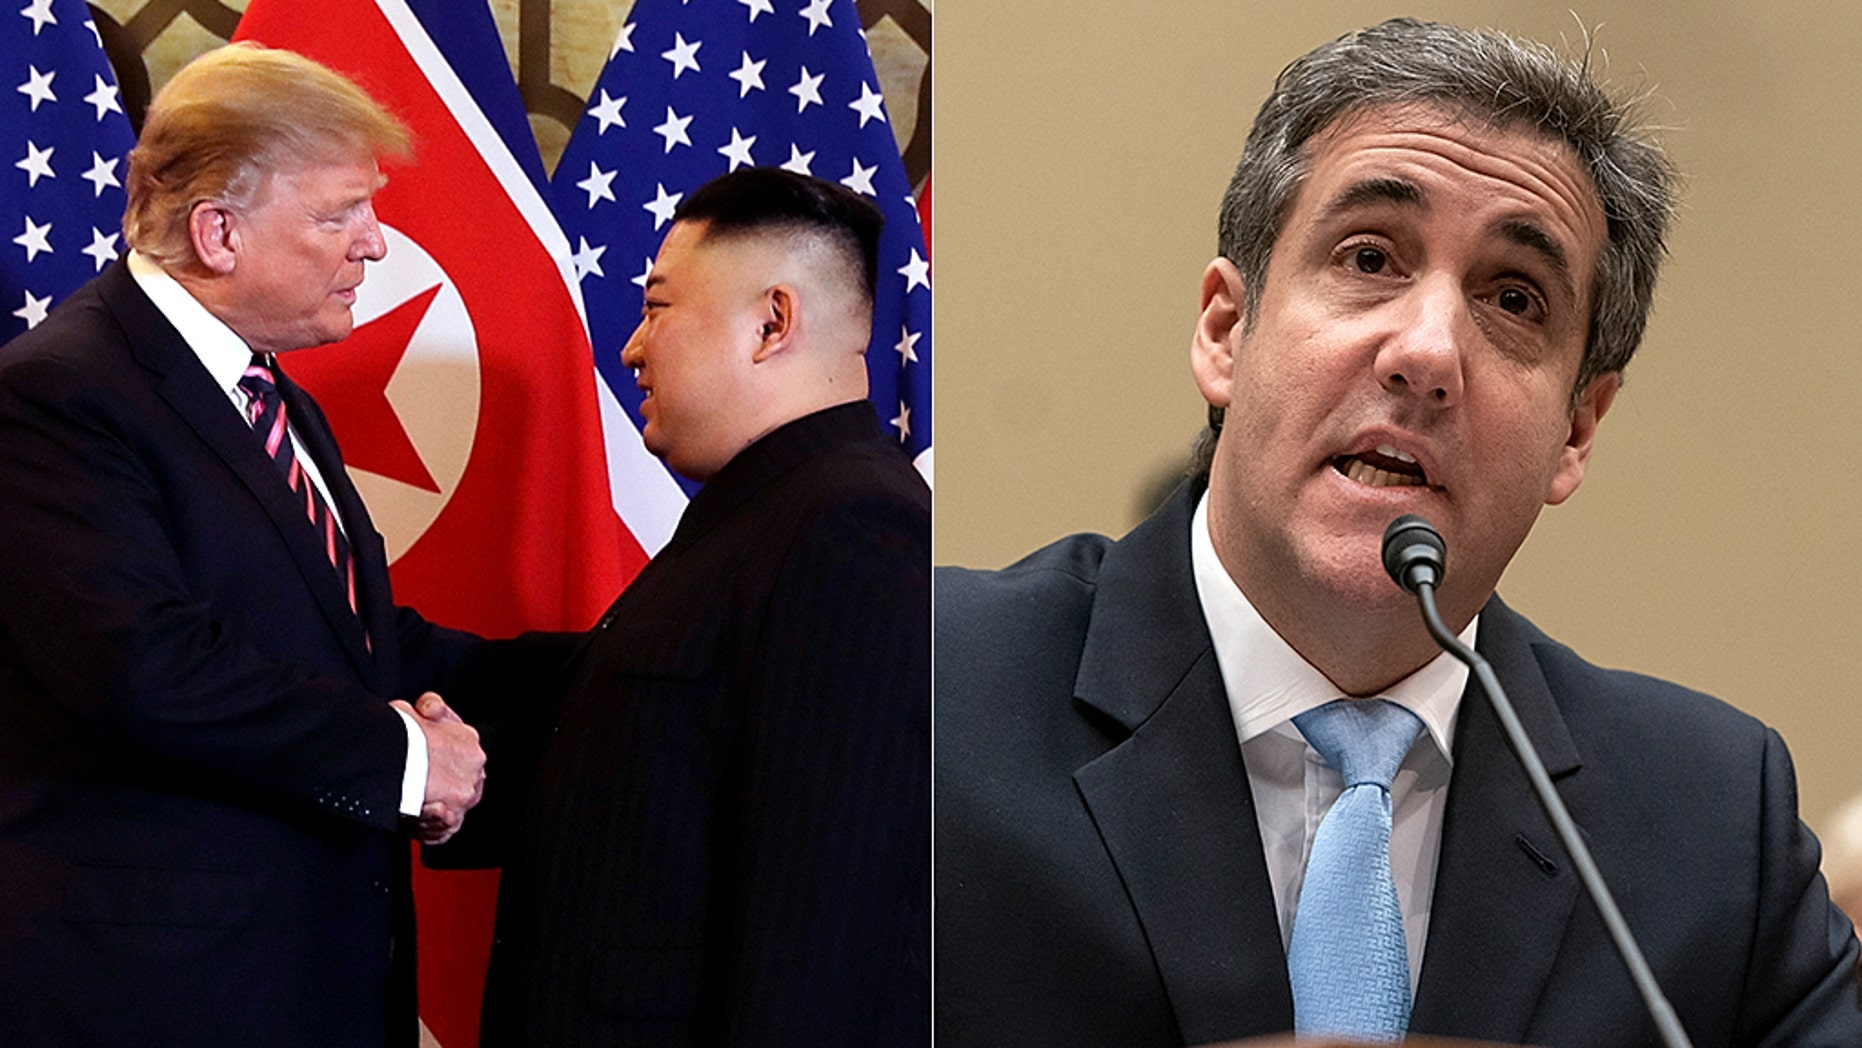 CNN and MSNBC primetime hosts didn't think the Hanoi summit was as newsworthy as Michael Cohen's testimony.